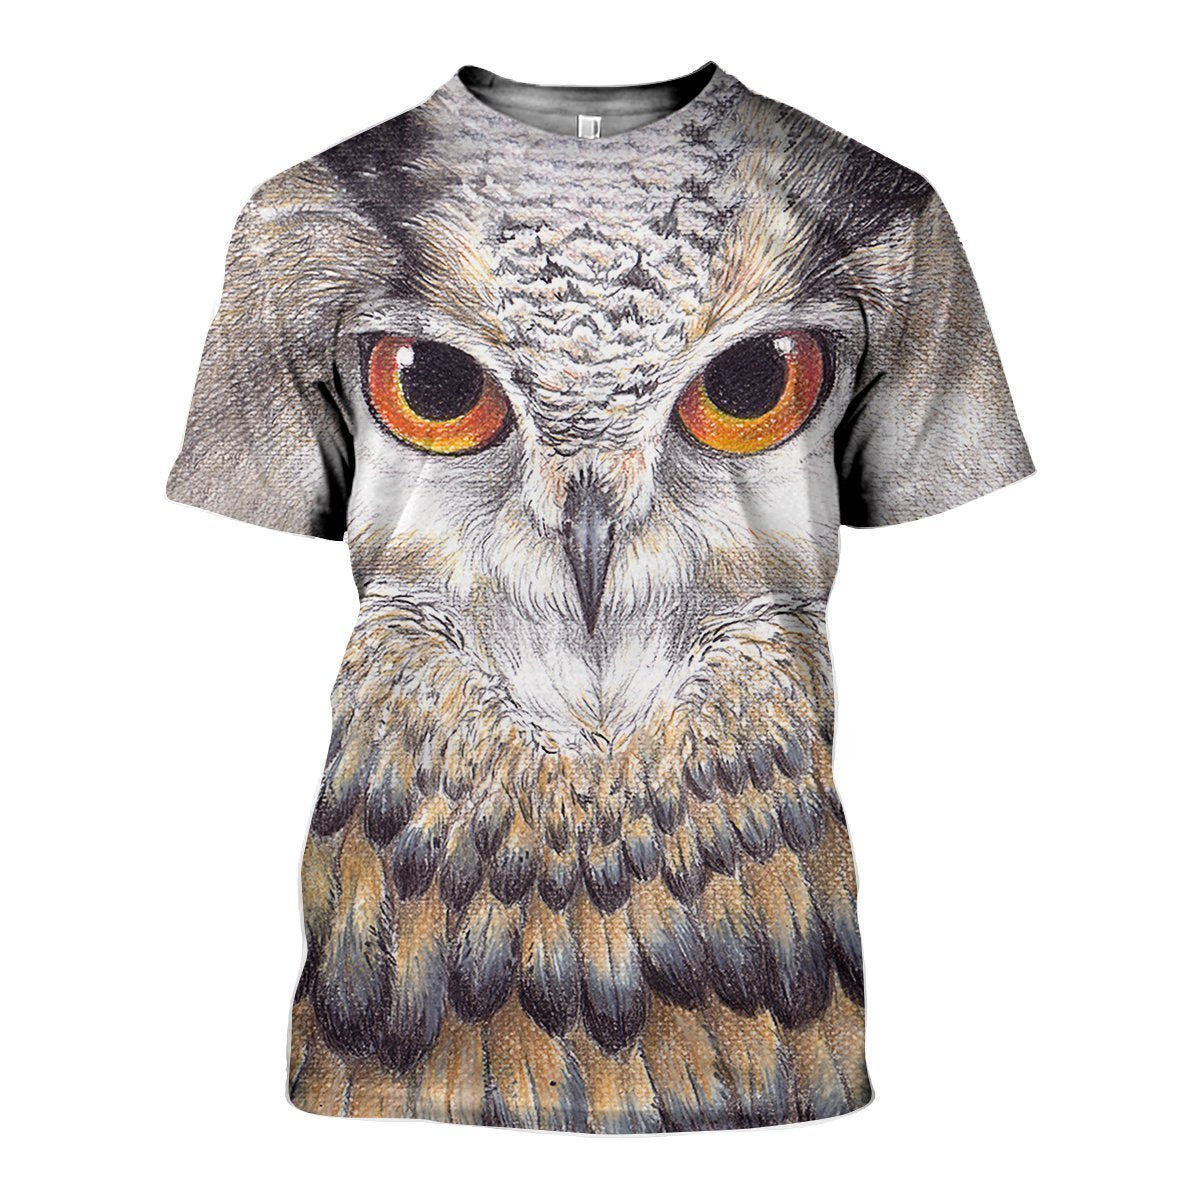 3D All Over Printed Owl Art Shirts-Apparel-HP Arts-T-Shirt-S-Vibe Cosy™